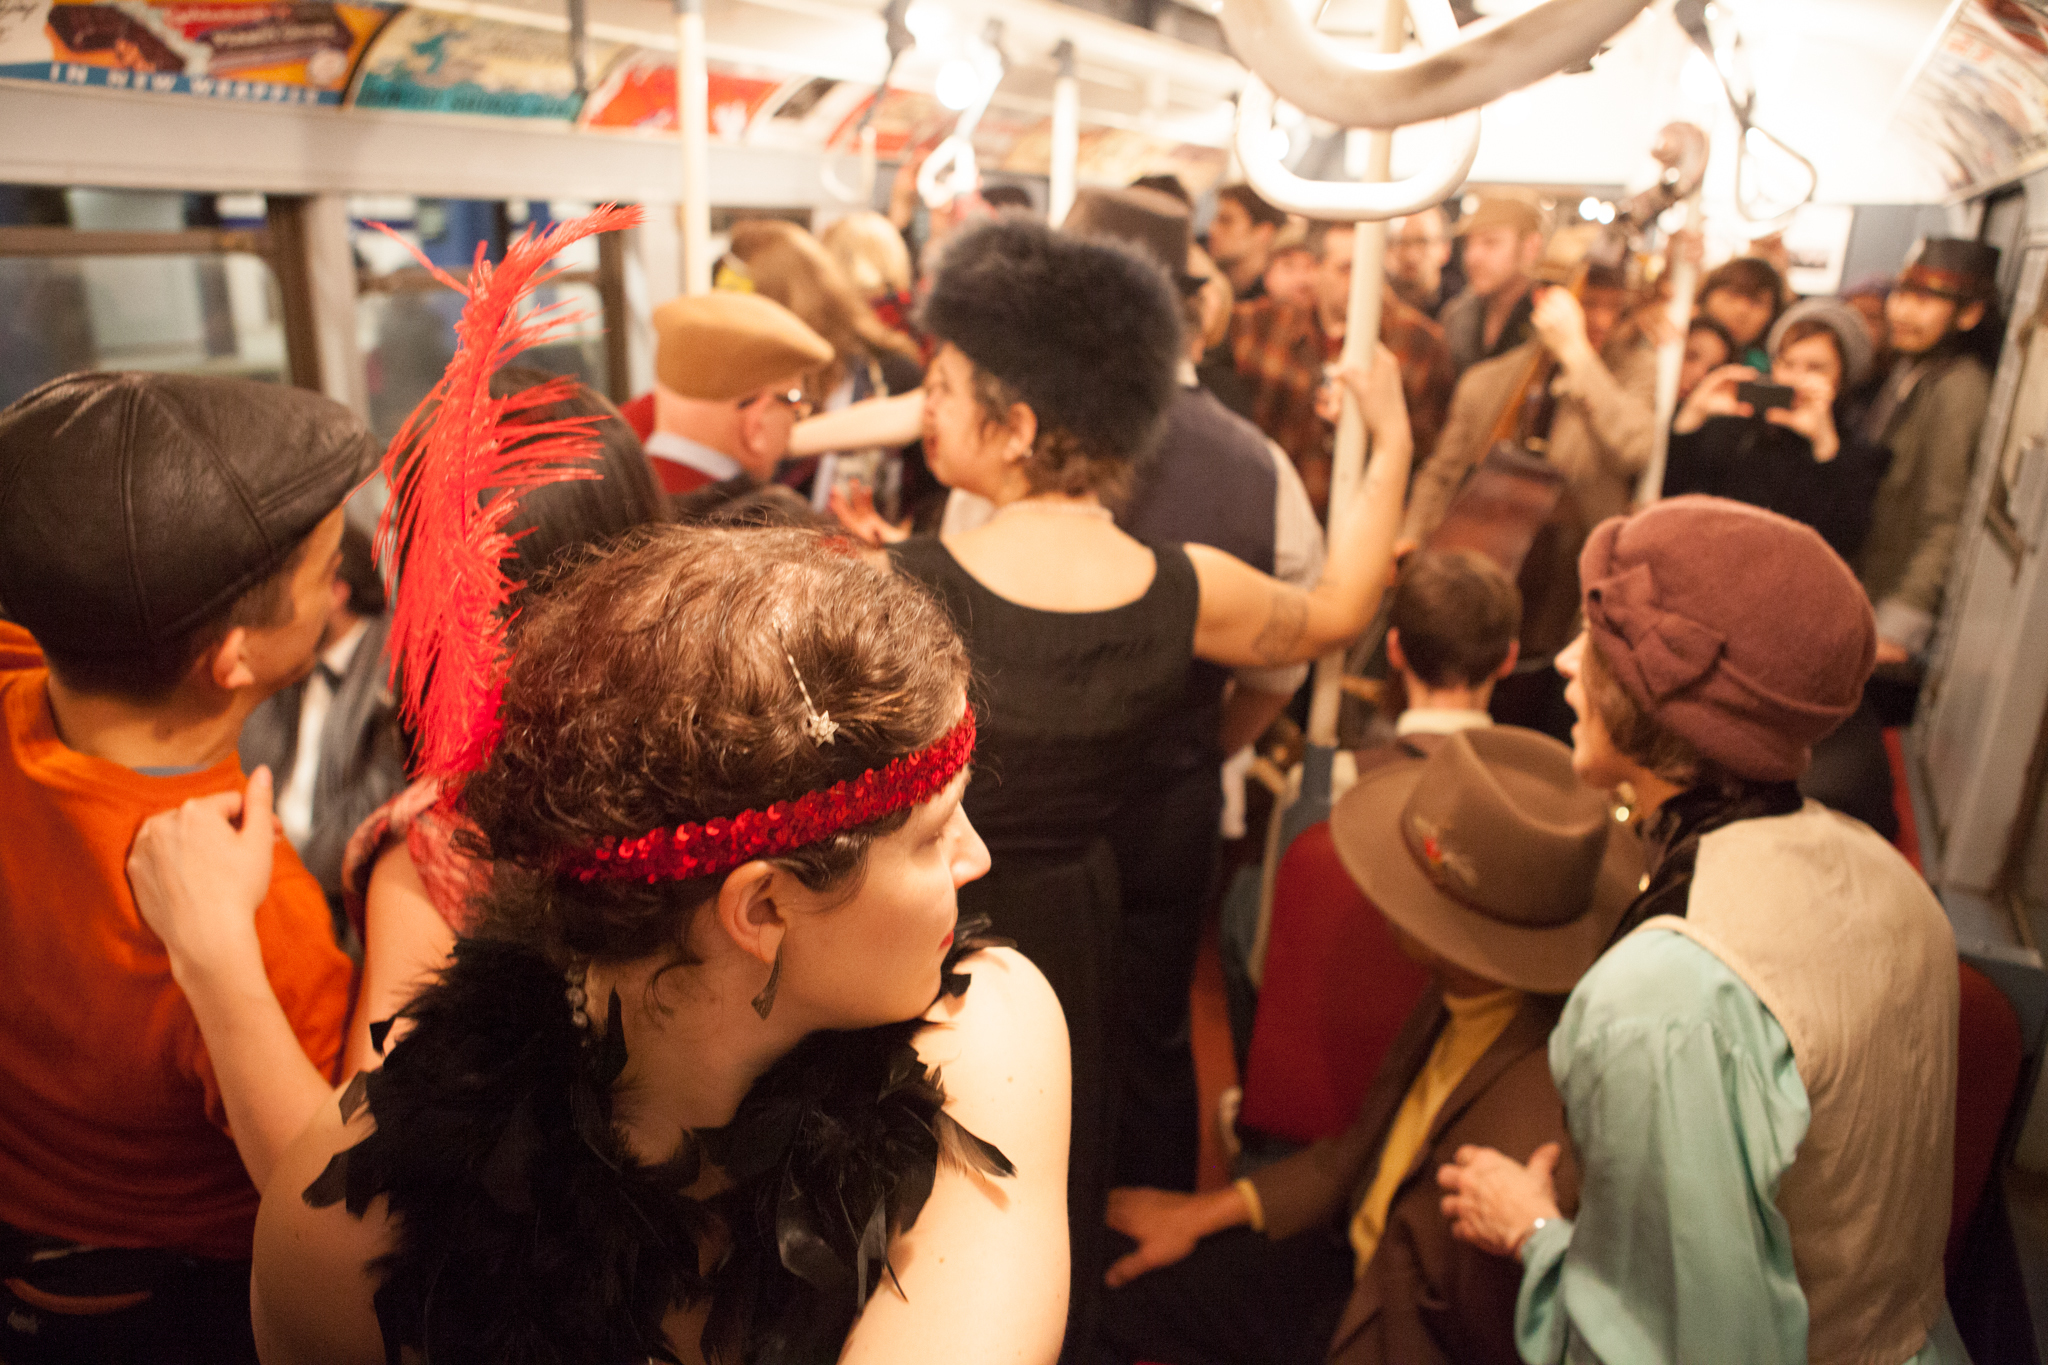 Vintage Peacock Party on the Vintage NYC Subway Trains 2012